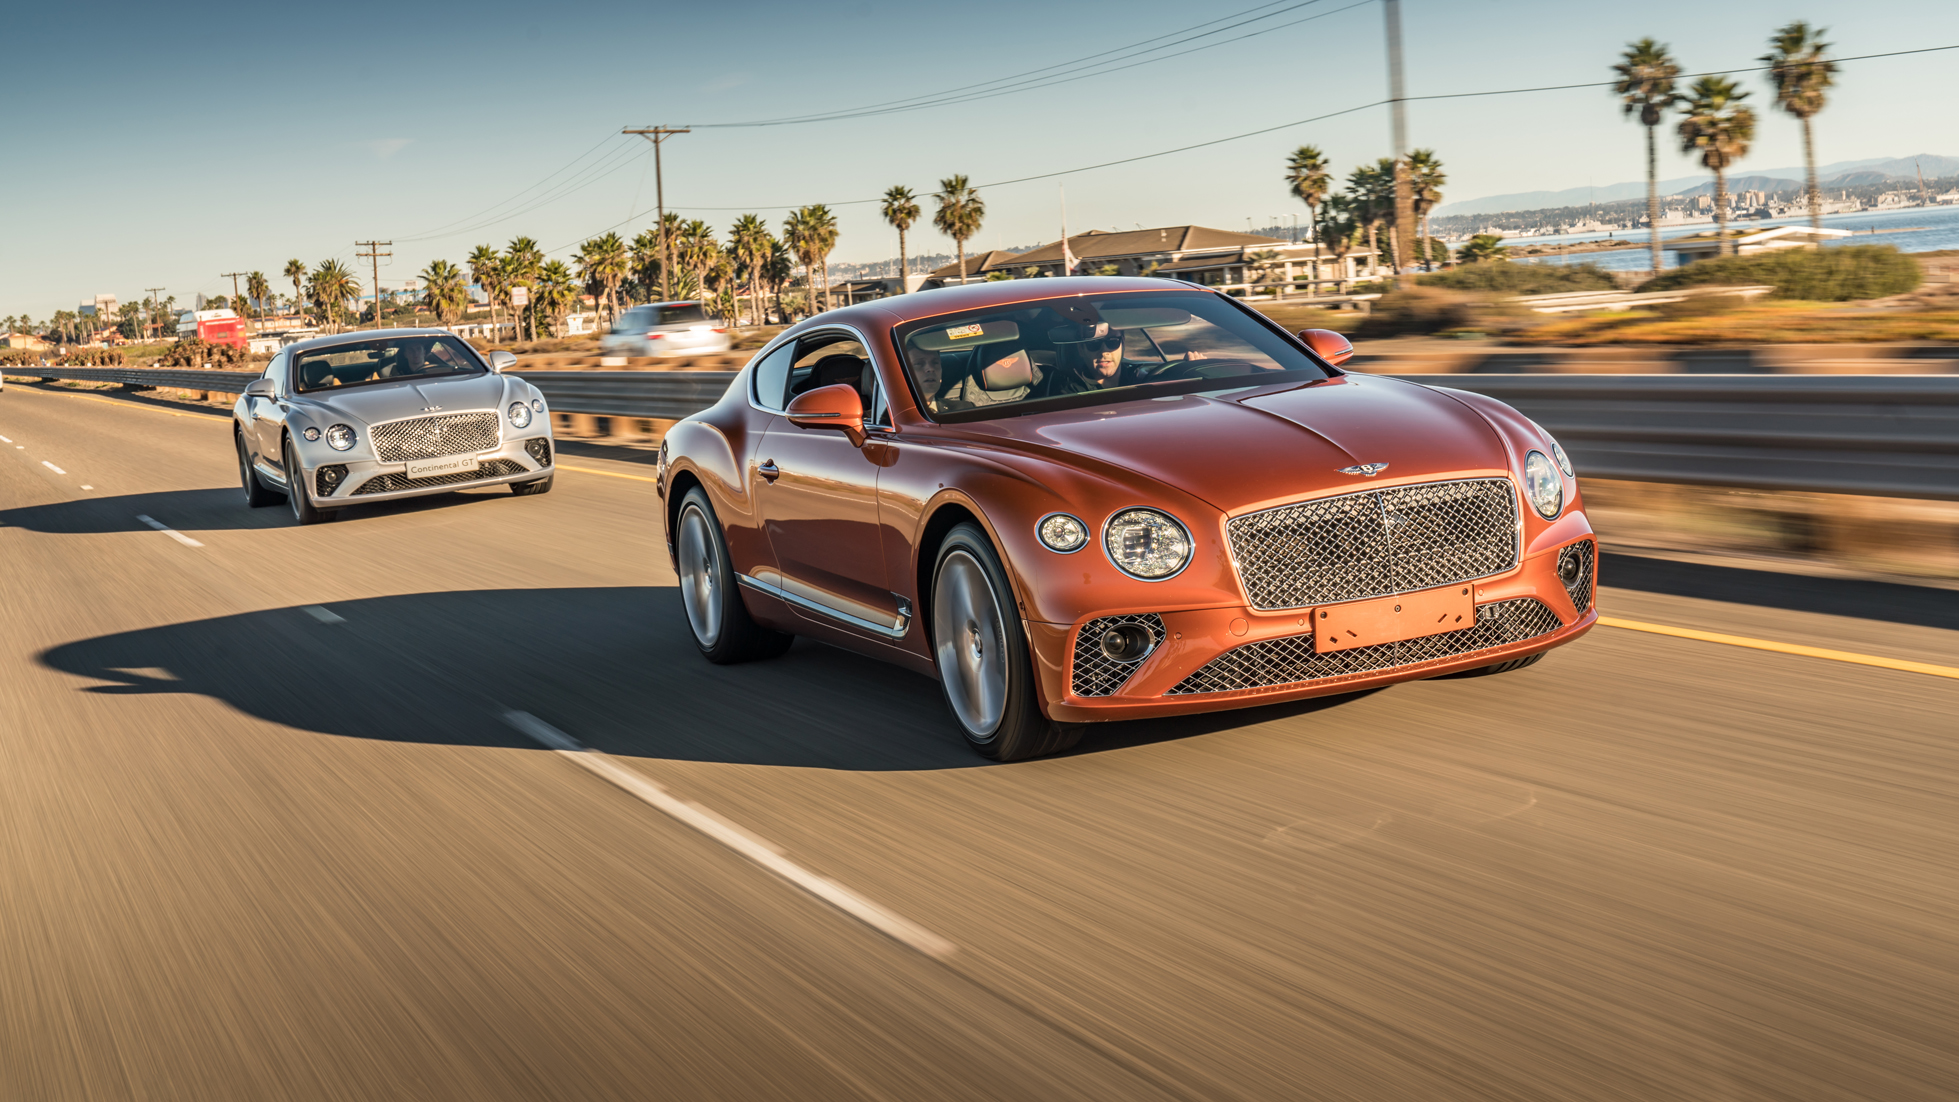 BENTLEY CONTINENTAL GT FLY AND DRIVE - BENTLEY LA JOLLA